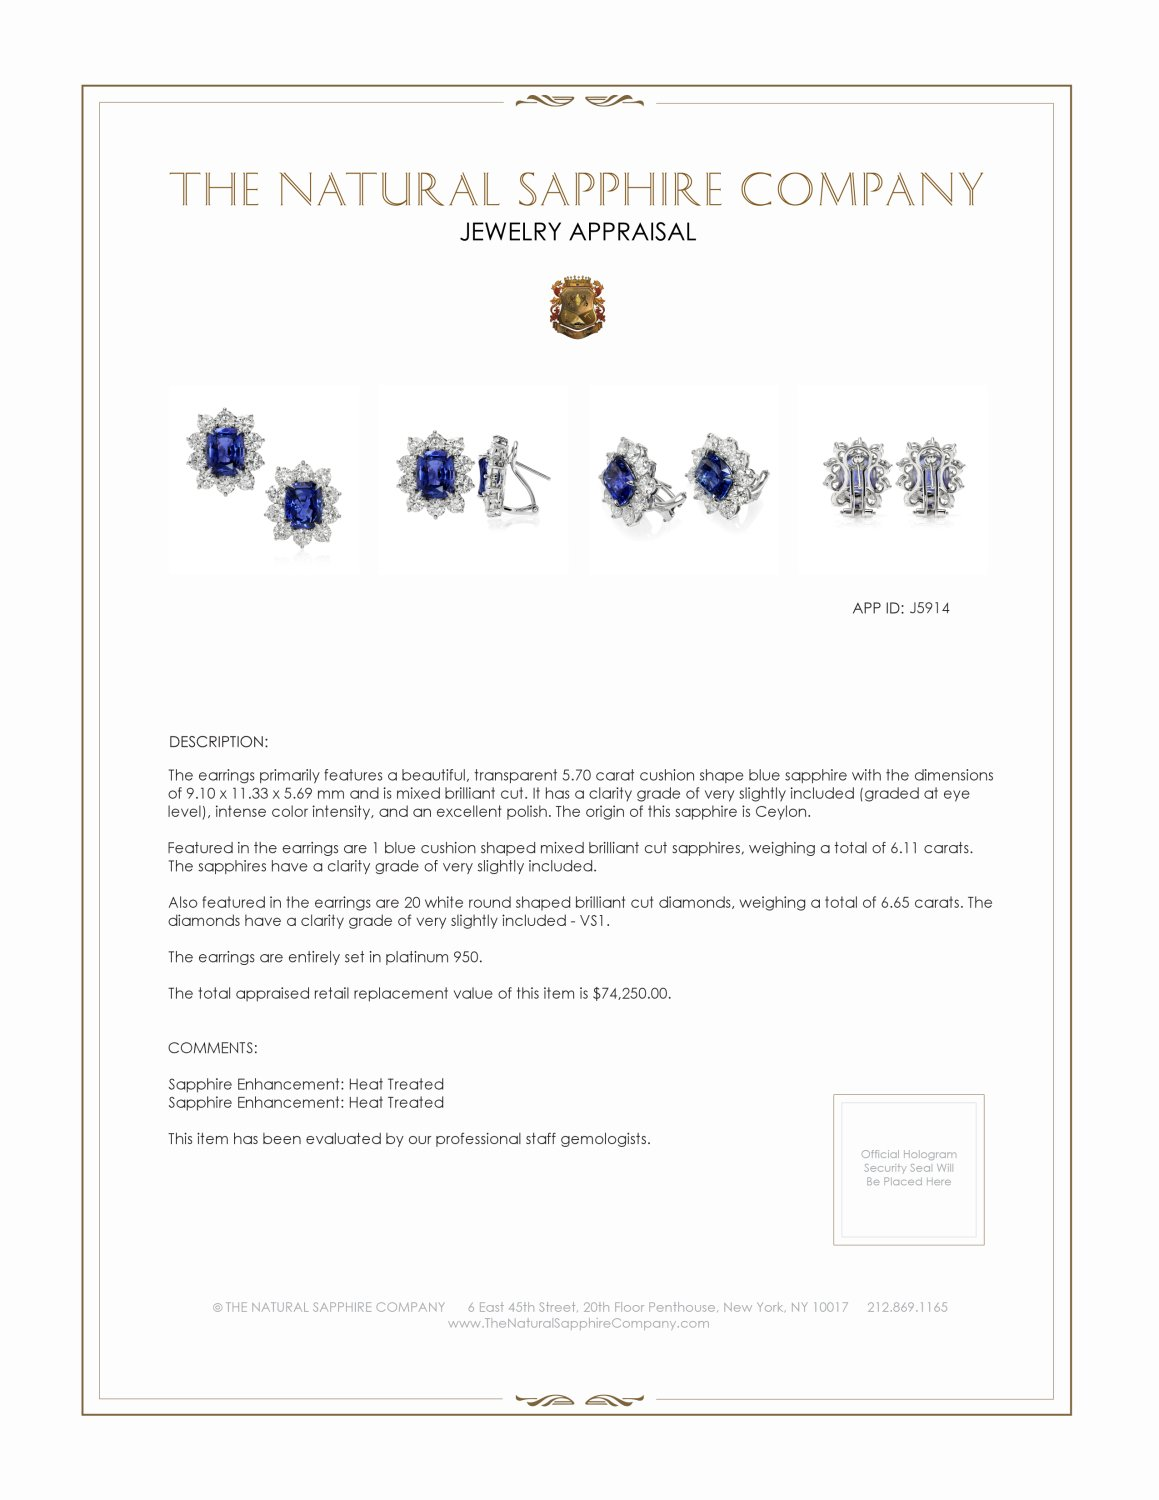 6.11ct Blue Sapphire Earring Certification 3